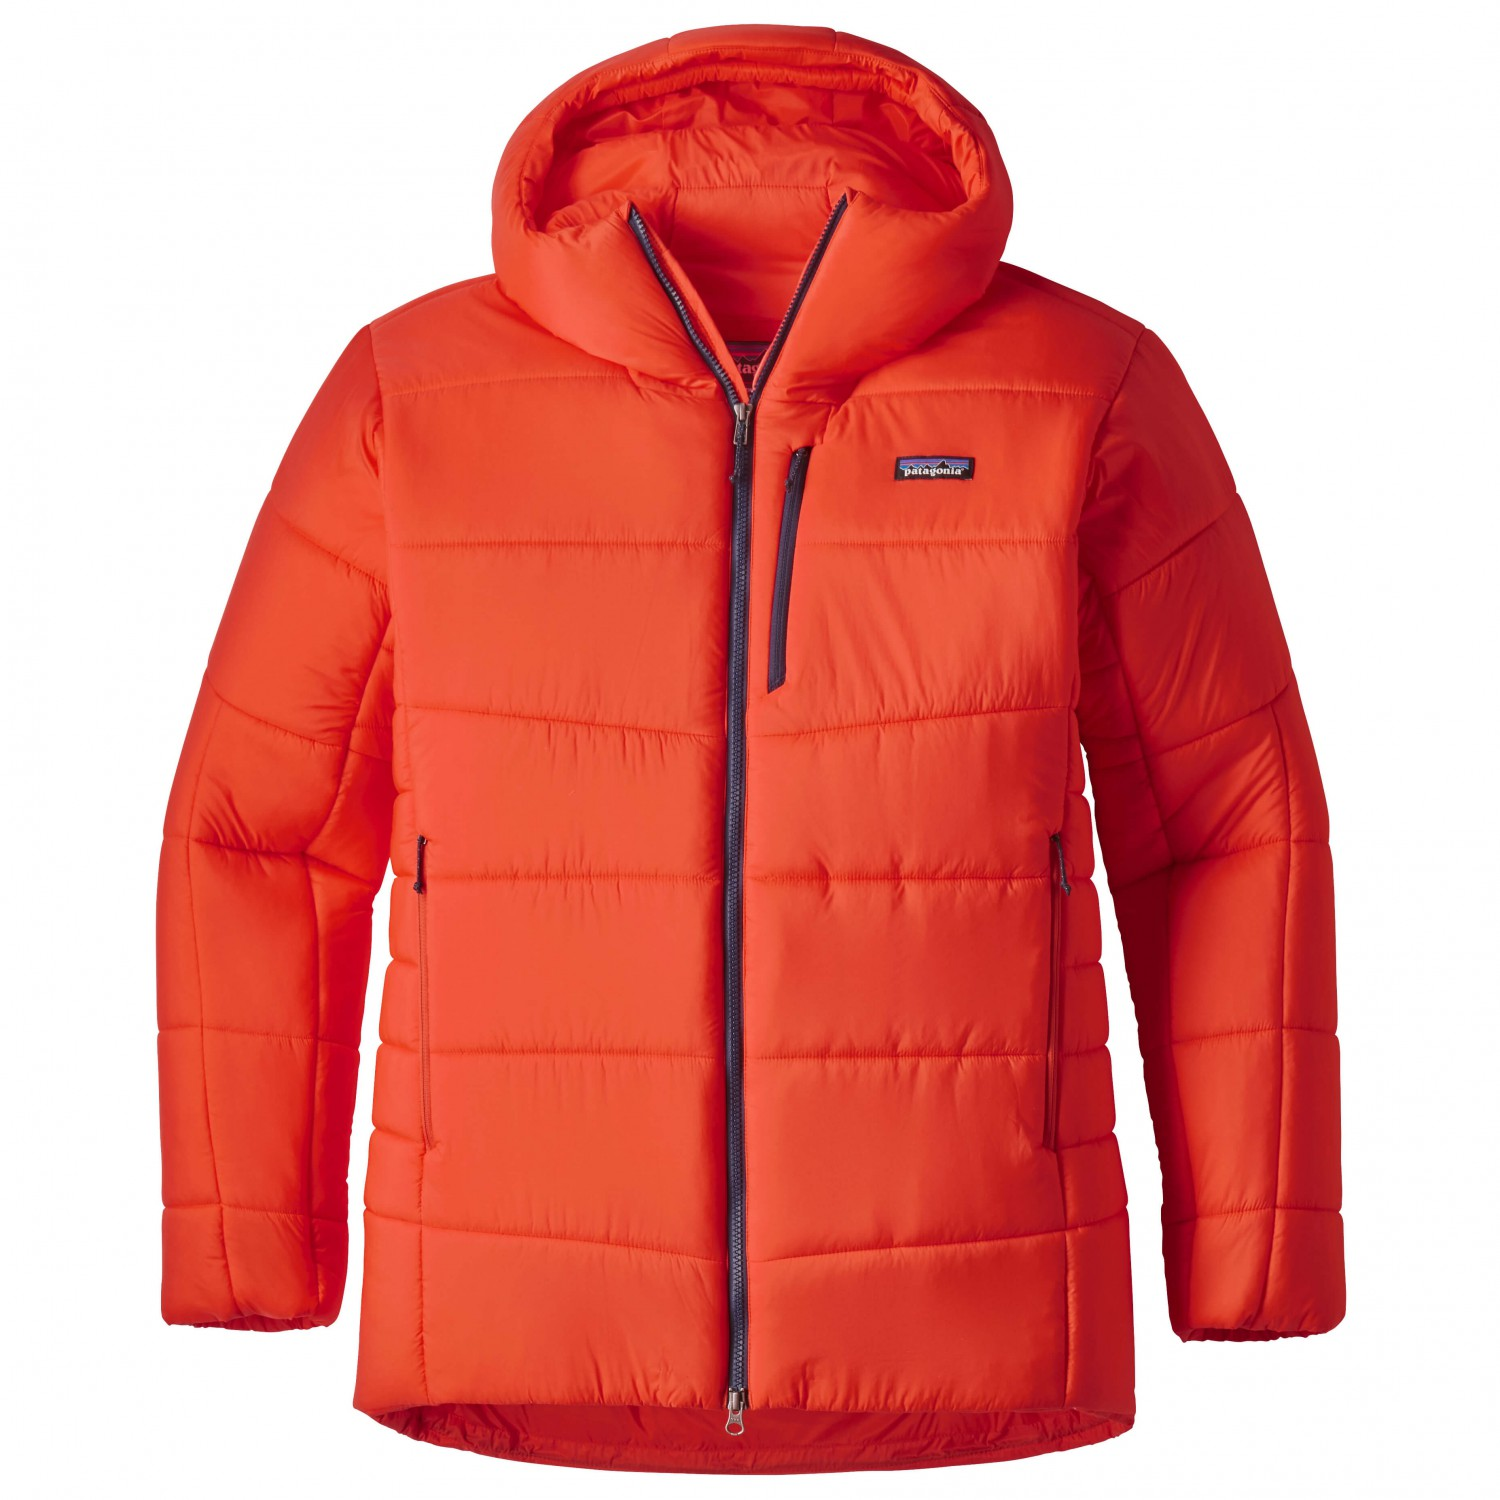 7e6ae3228 Patagonia Hyper Puff Parka - Synthetic jacket Men's   Buy online ...